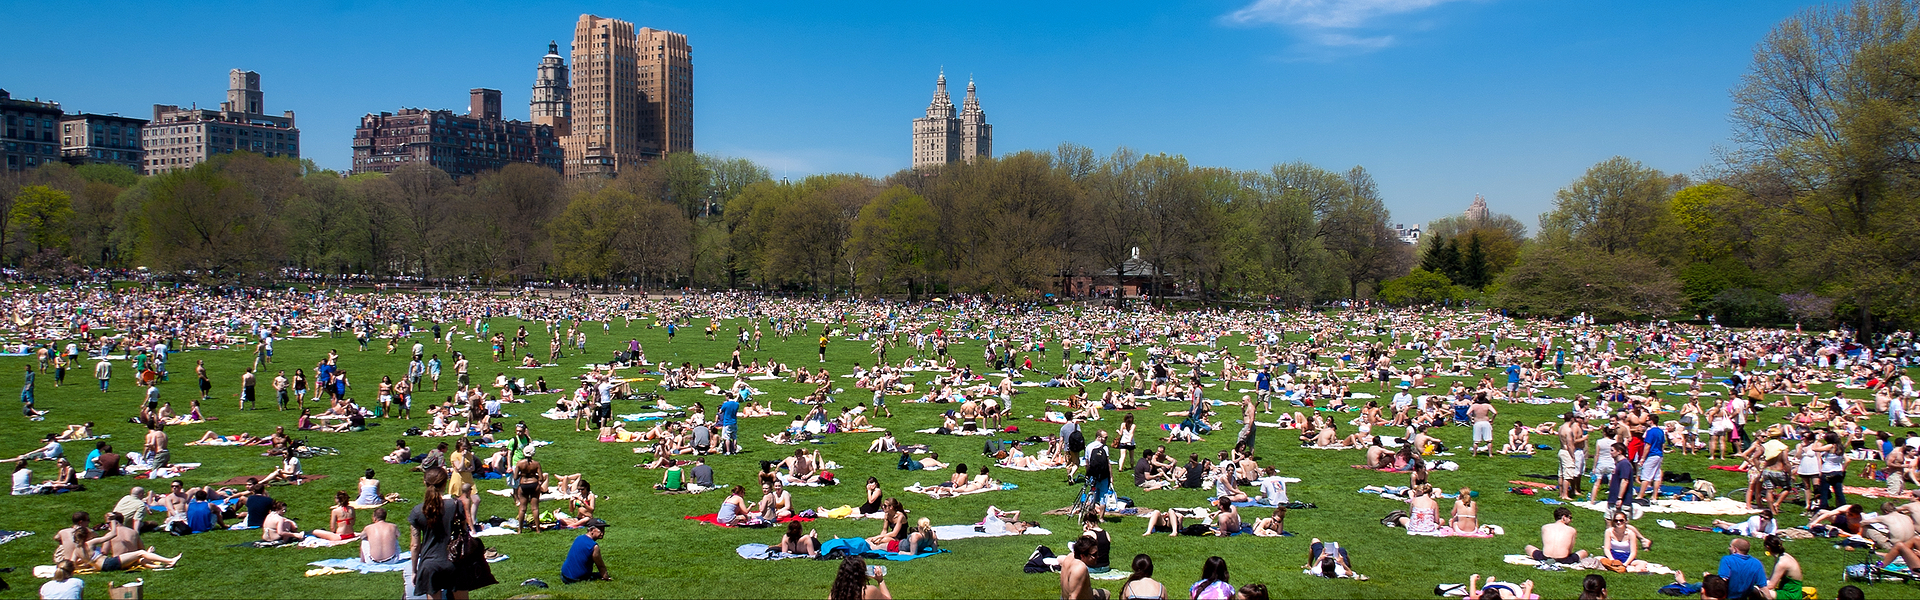 http://livingfreenyc.com/wp-content/uploads/2016/06/Central-Park.jpg